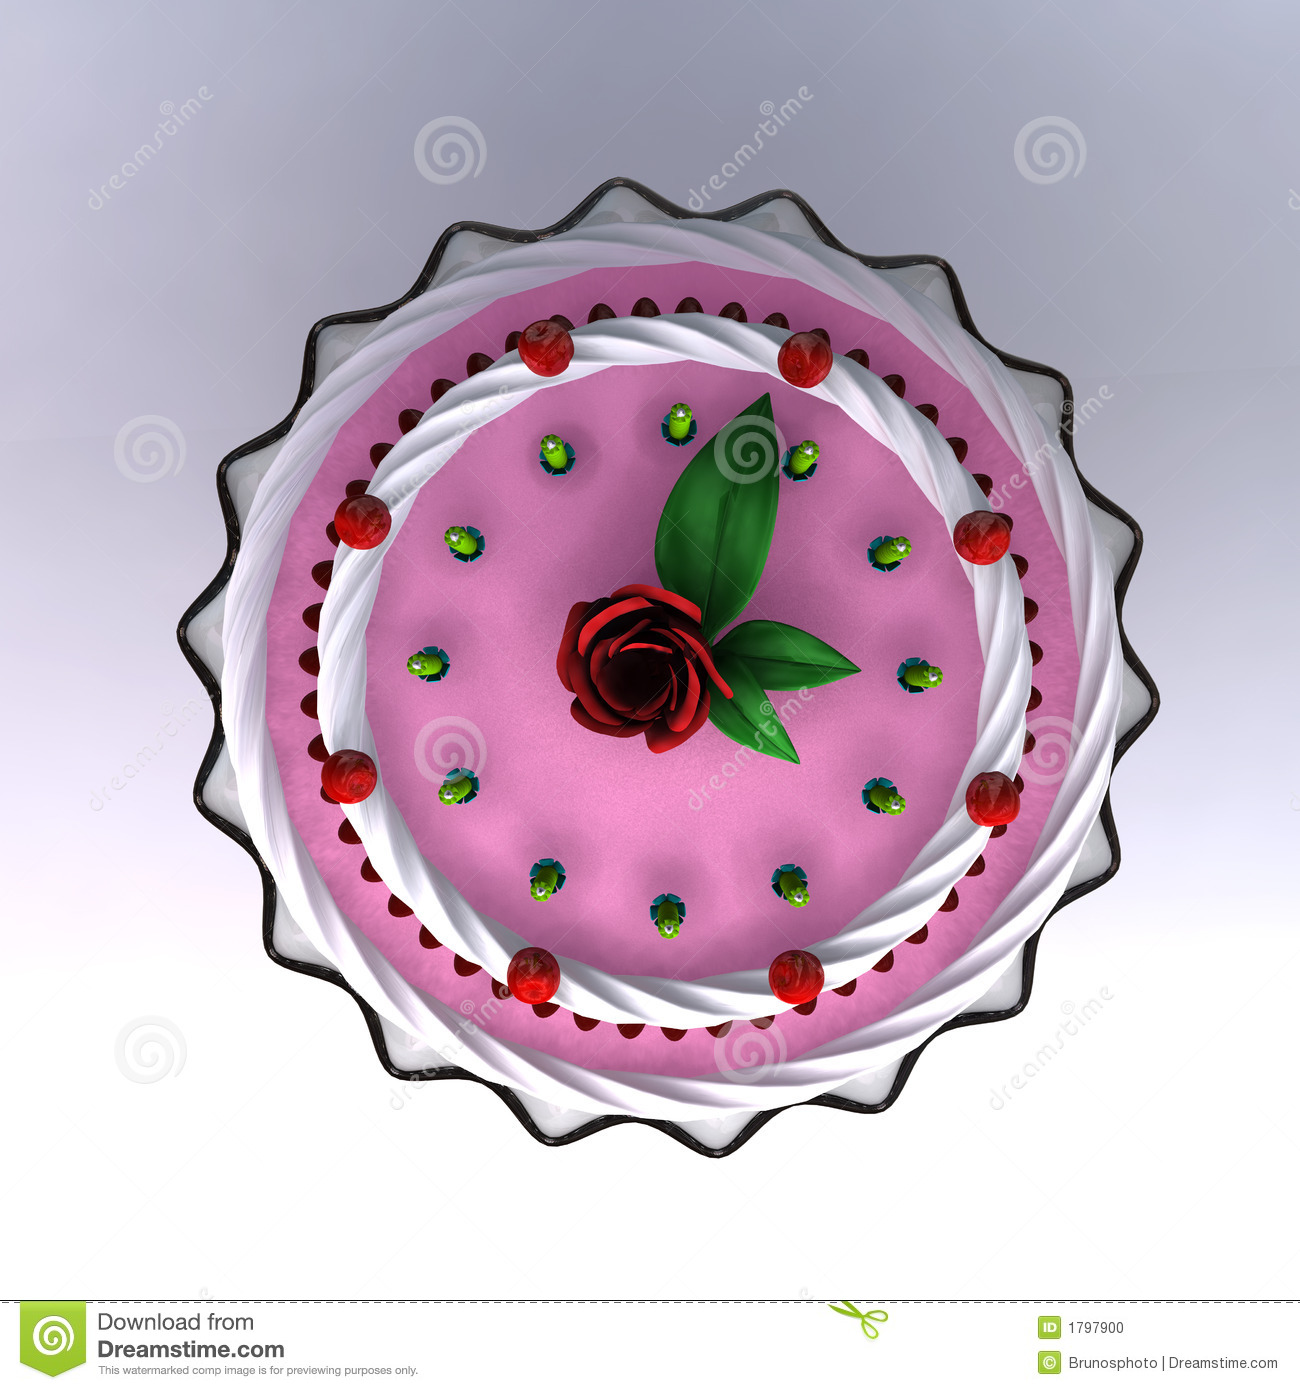 A 3D Render Of Birthday And Wedding Cake Stock Photo ...